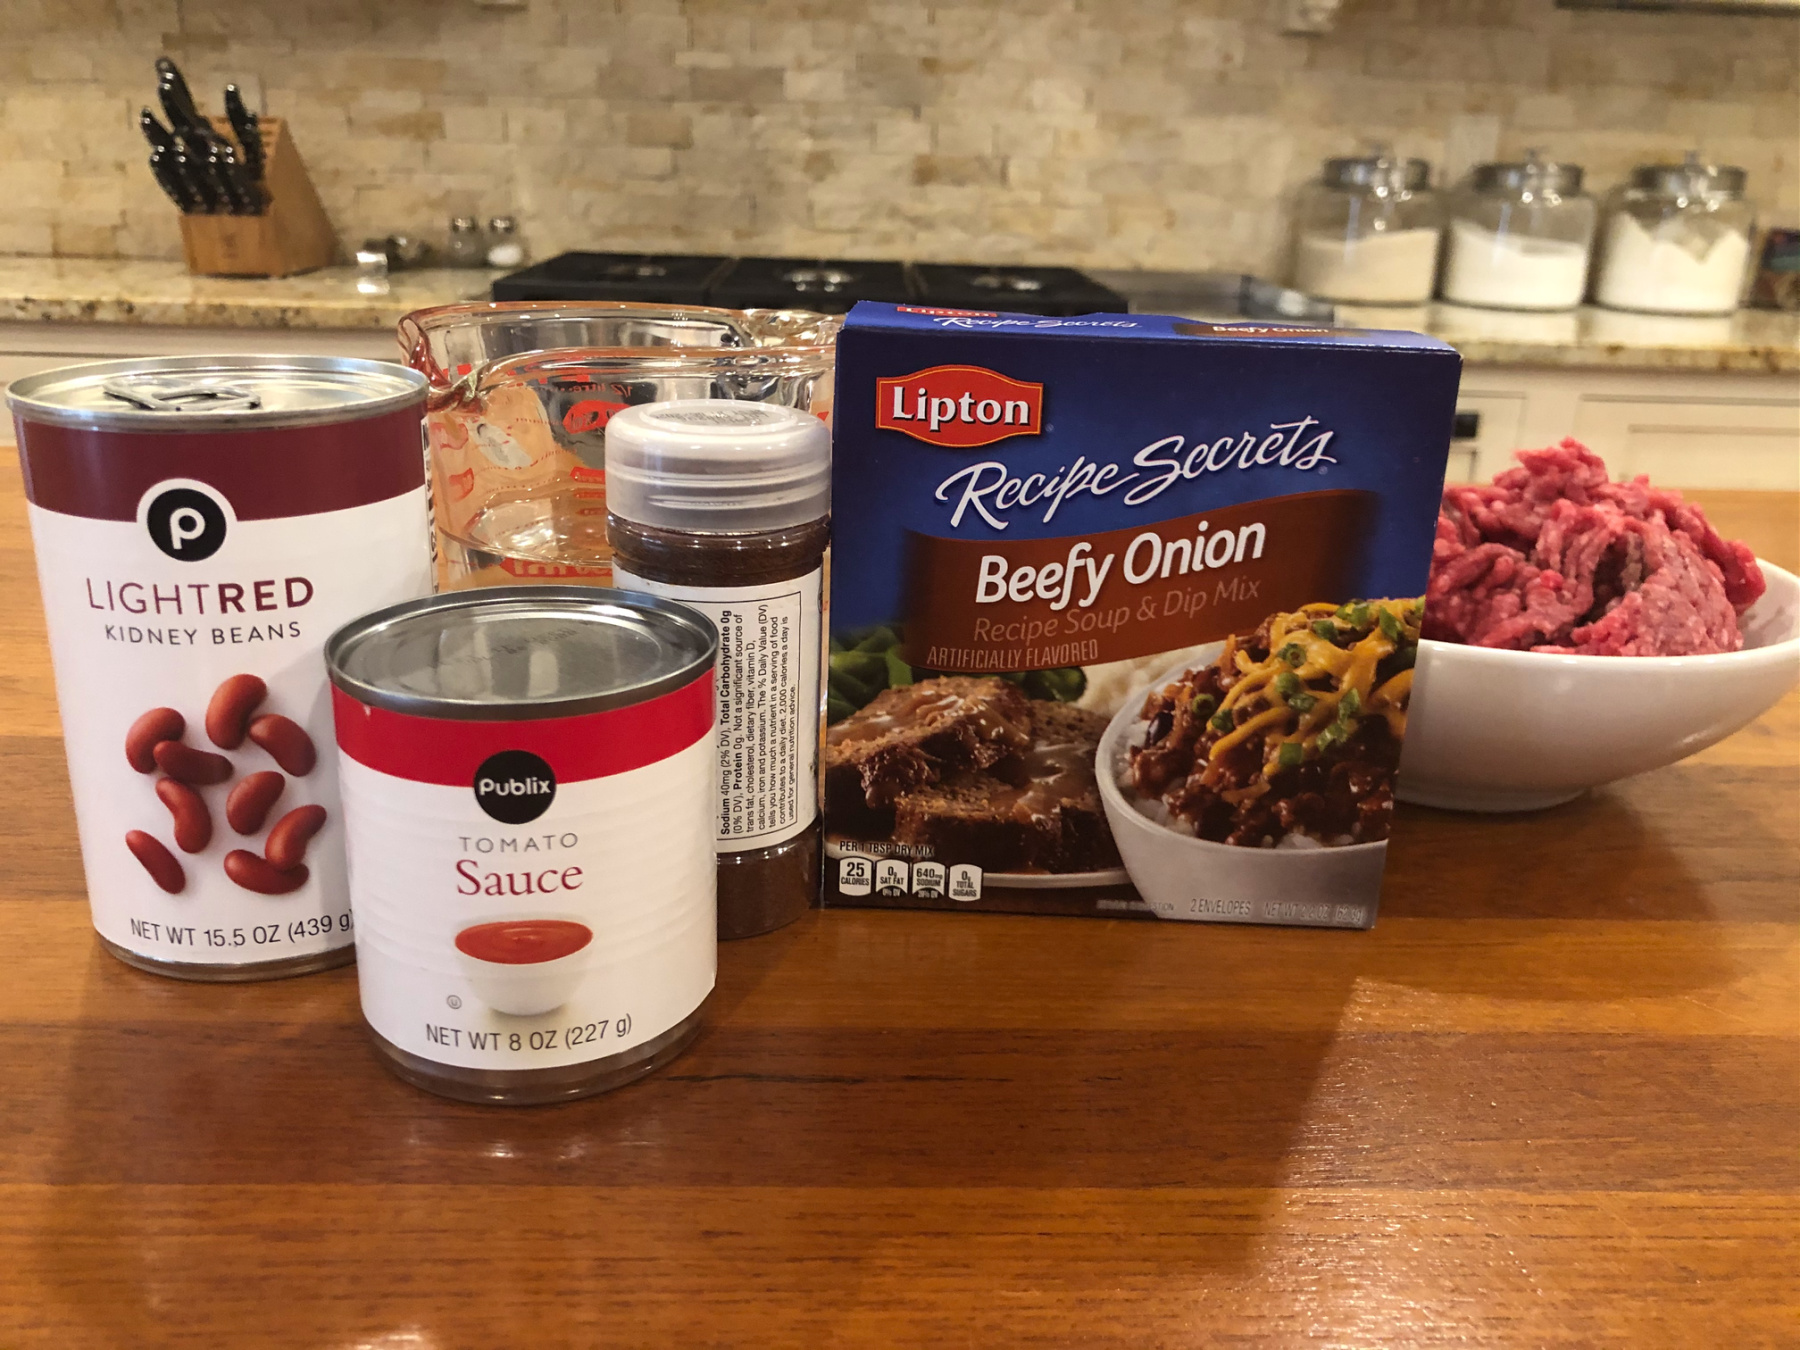 Serve Up This Fast 'n Easy Chili When You Need A Meal In A Flash + Save On Lipton Recipe Secrets At Publix on I Heart Publix